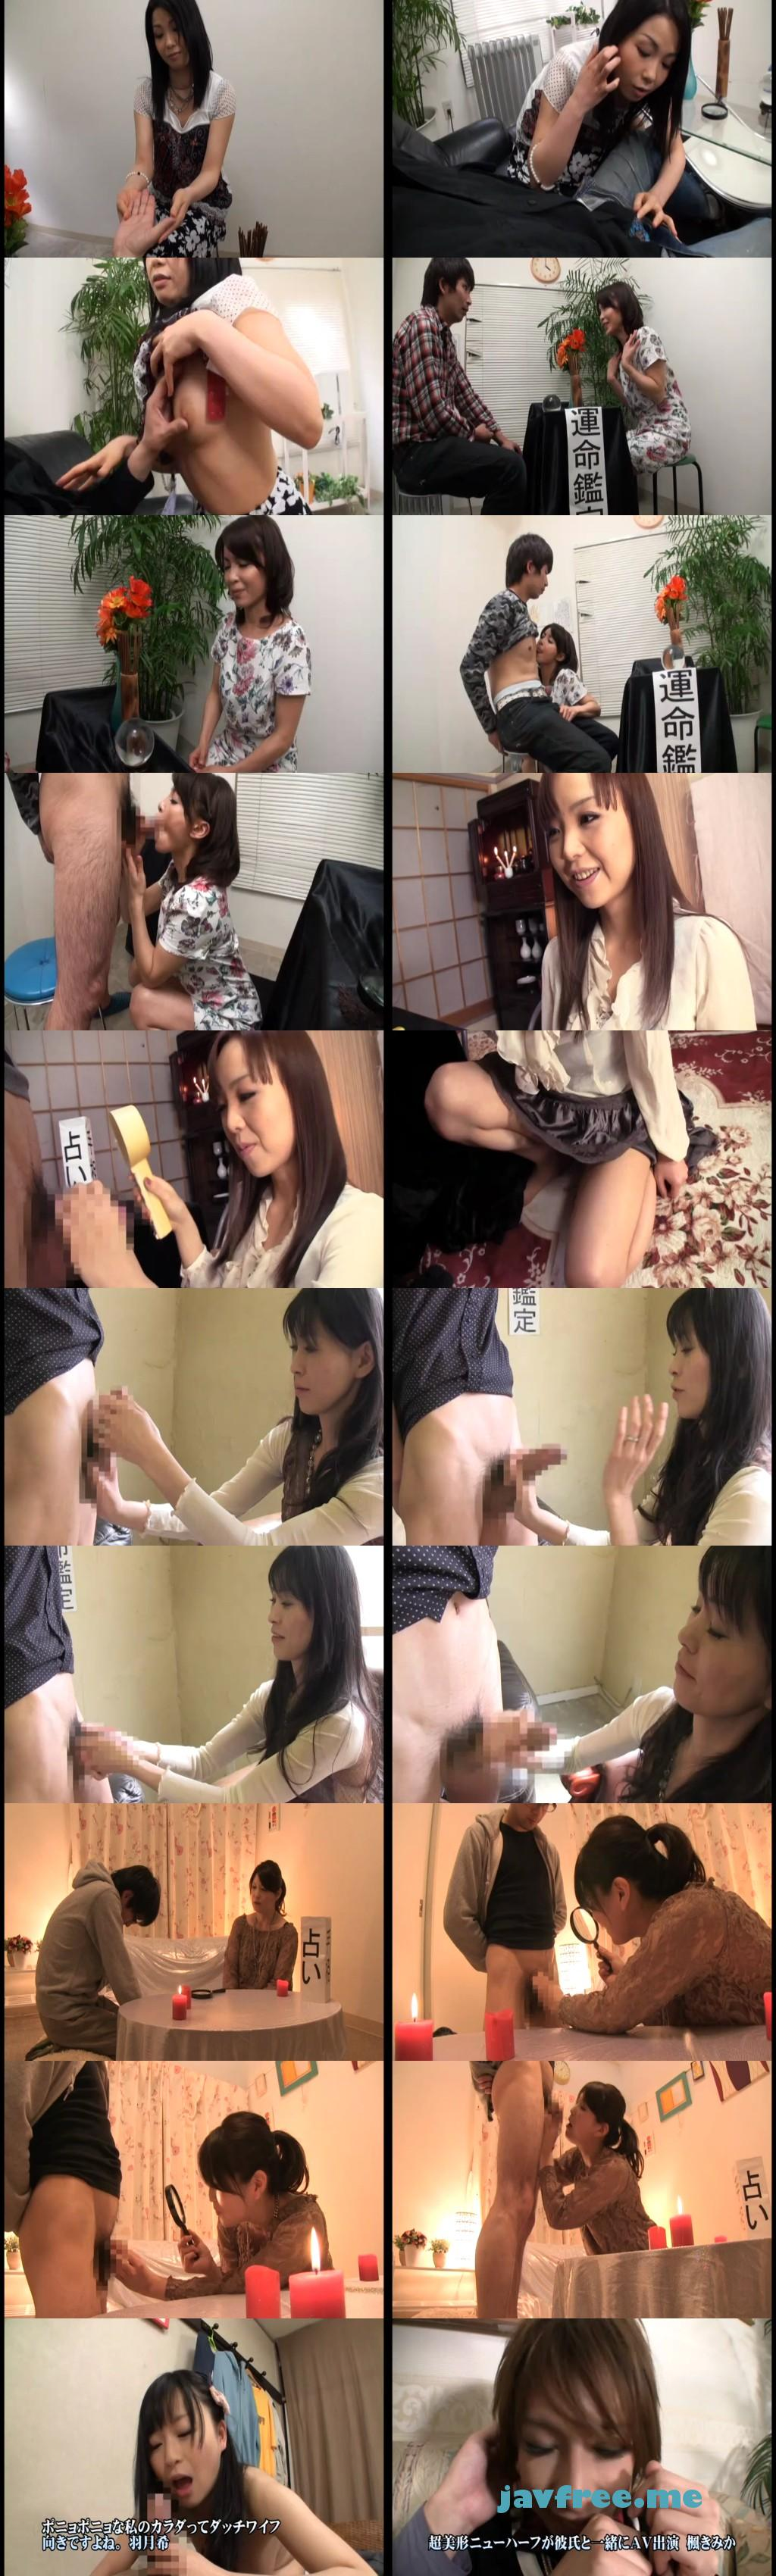 [VNDS-2864] 熟女占い師のおち○ぽ姓名判断 - image VNDS-2864 on https://javfree.me